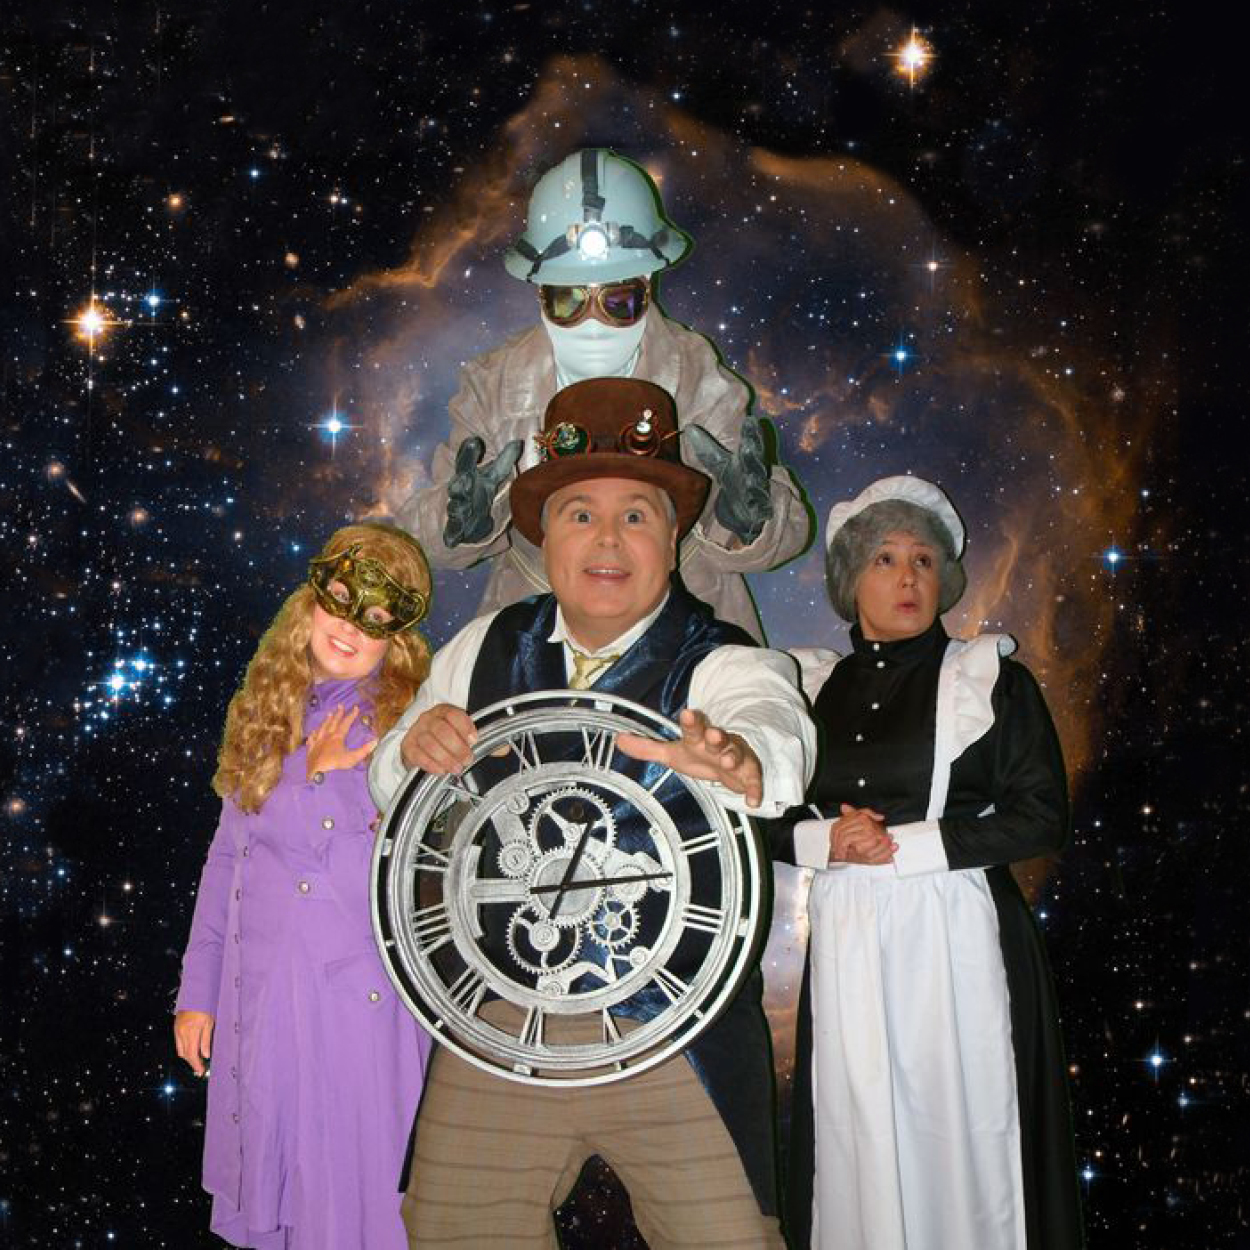 Theatreworks Free Summer Theatre Sponsored by CITI | The Time Machine